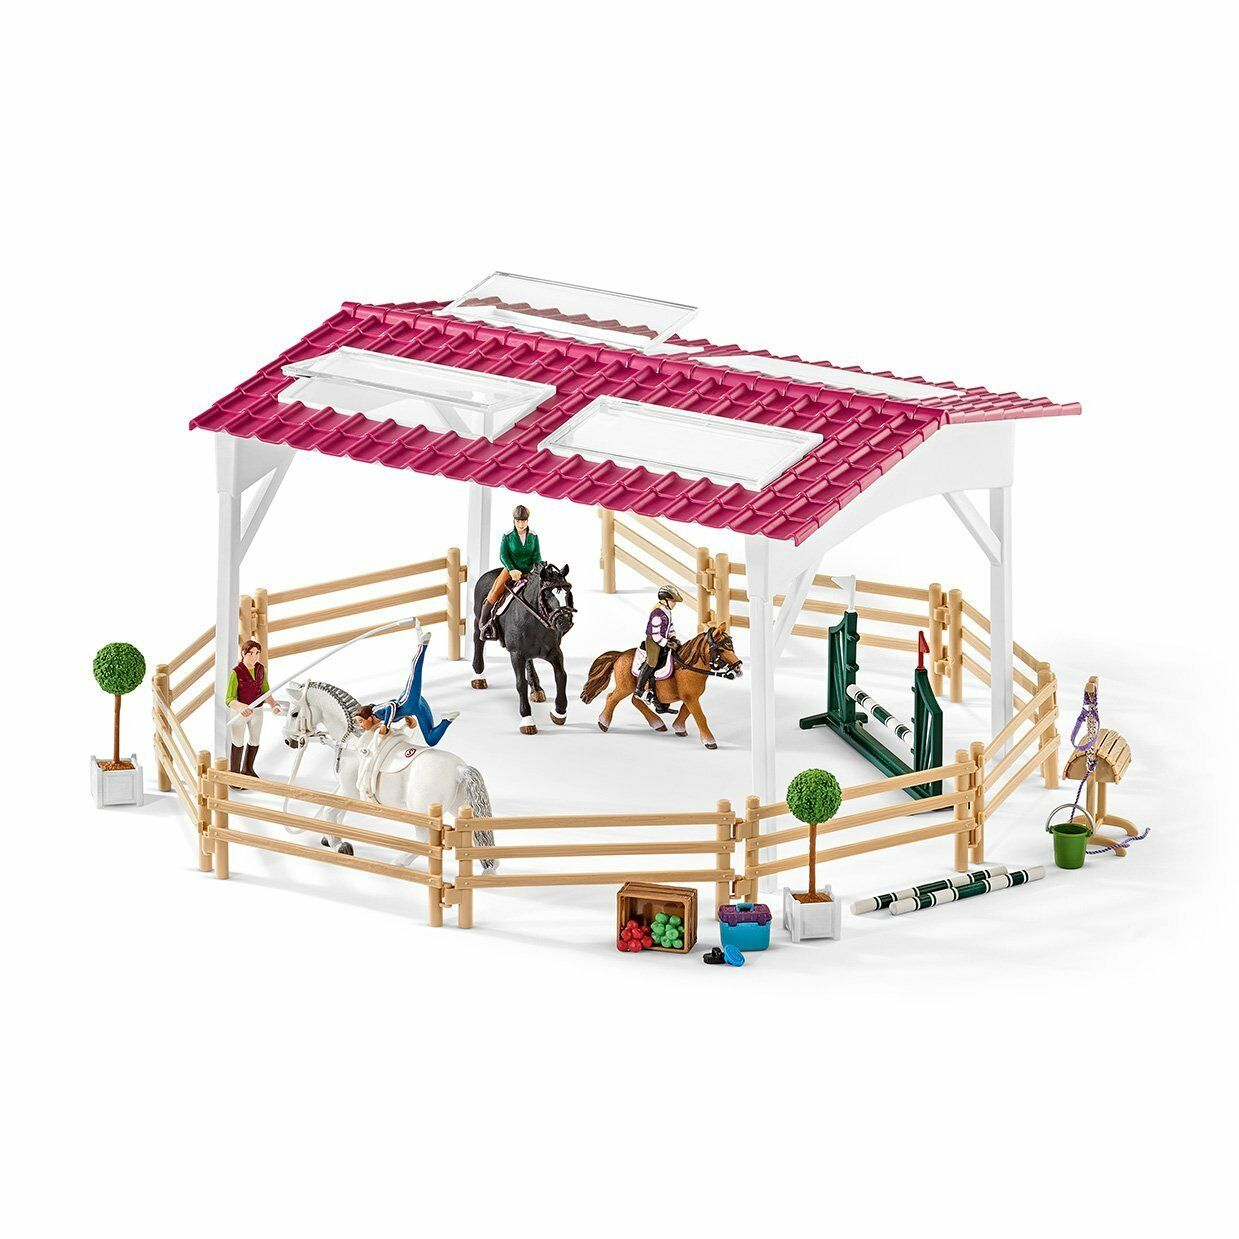 Schleich Horse Club 42389 School with Reiterinnen, Horses and Accessories